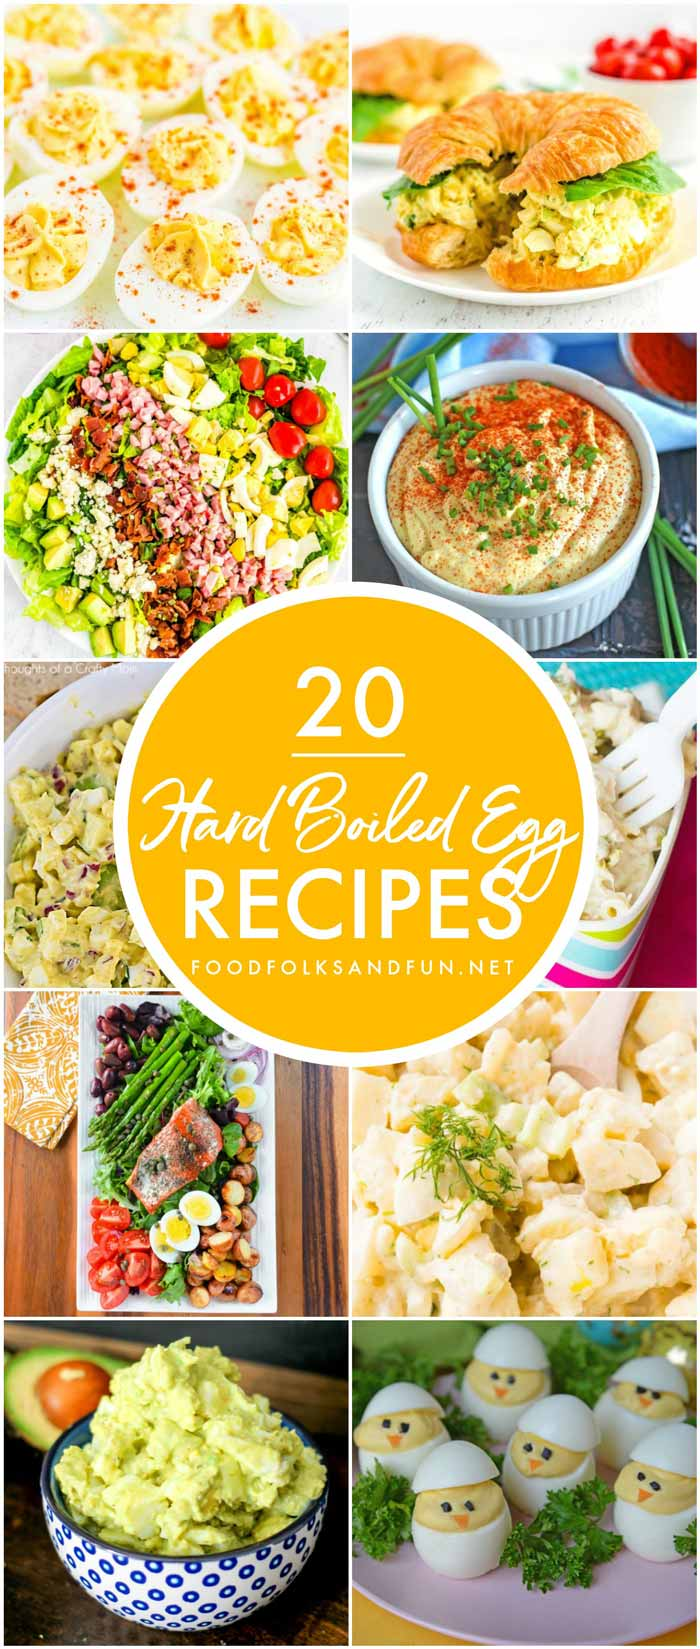 This Hard Boiled Egg Recipes Roundup has all of the recipes that you need to use up leftover Easter eggs! Here you'll find leafy salads, deviled eggs, egg salads, and more!